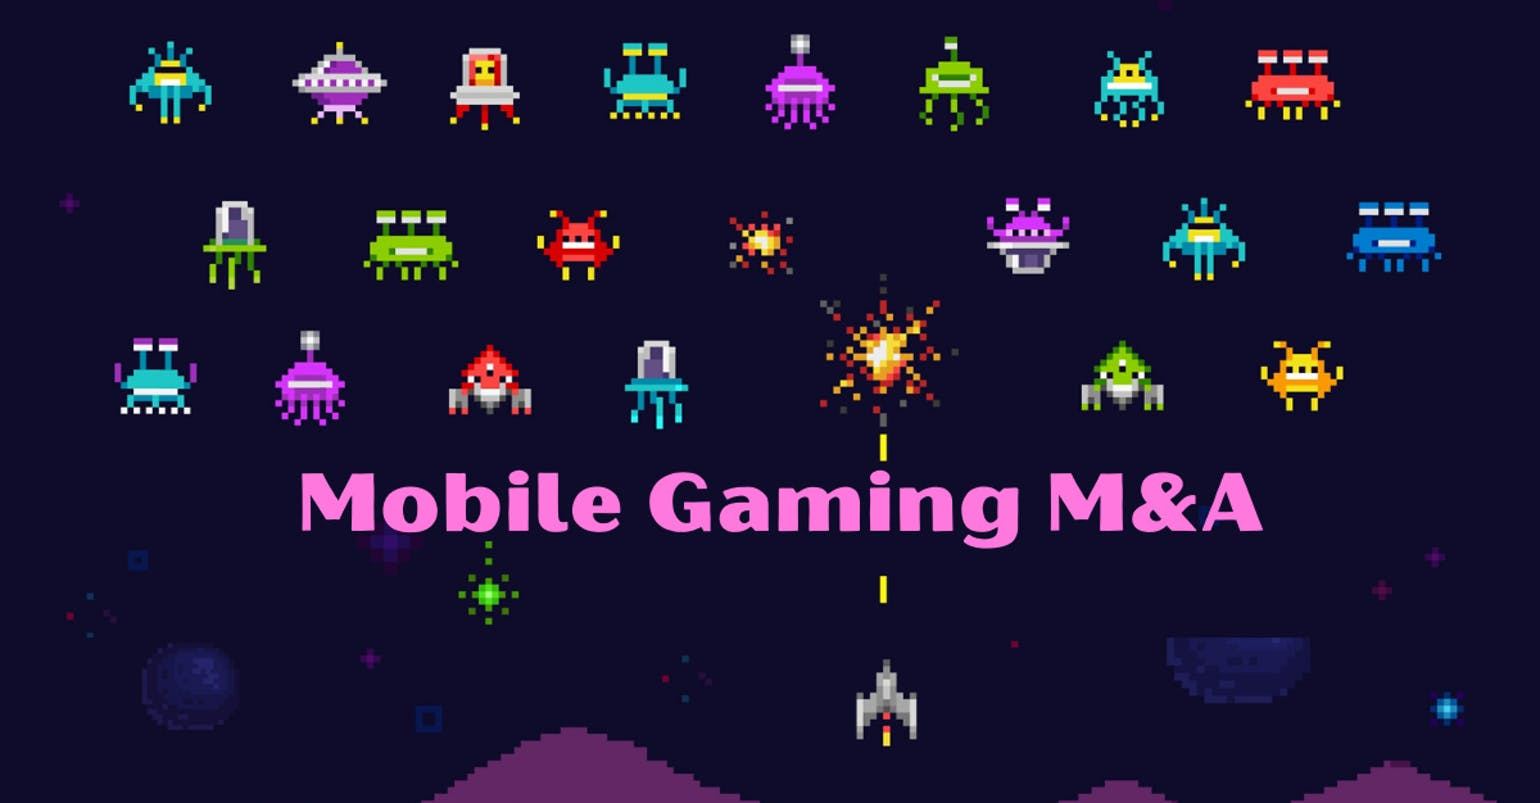 Mobile Gaming M&A